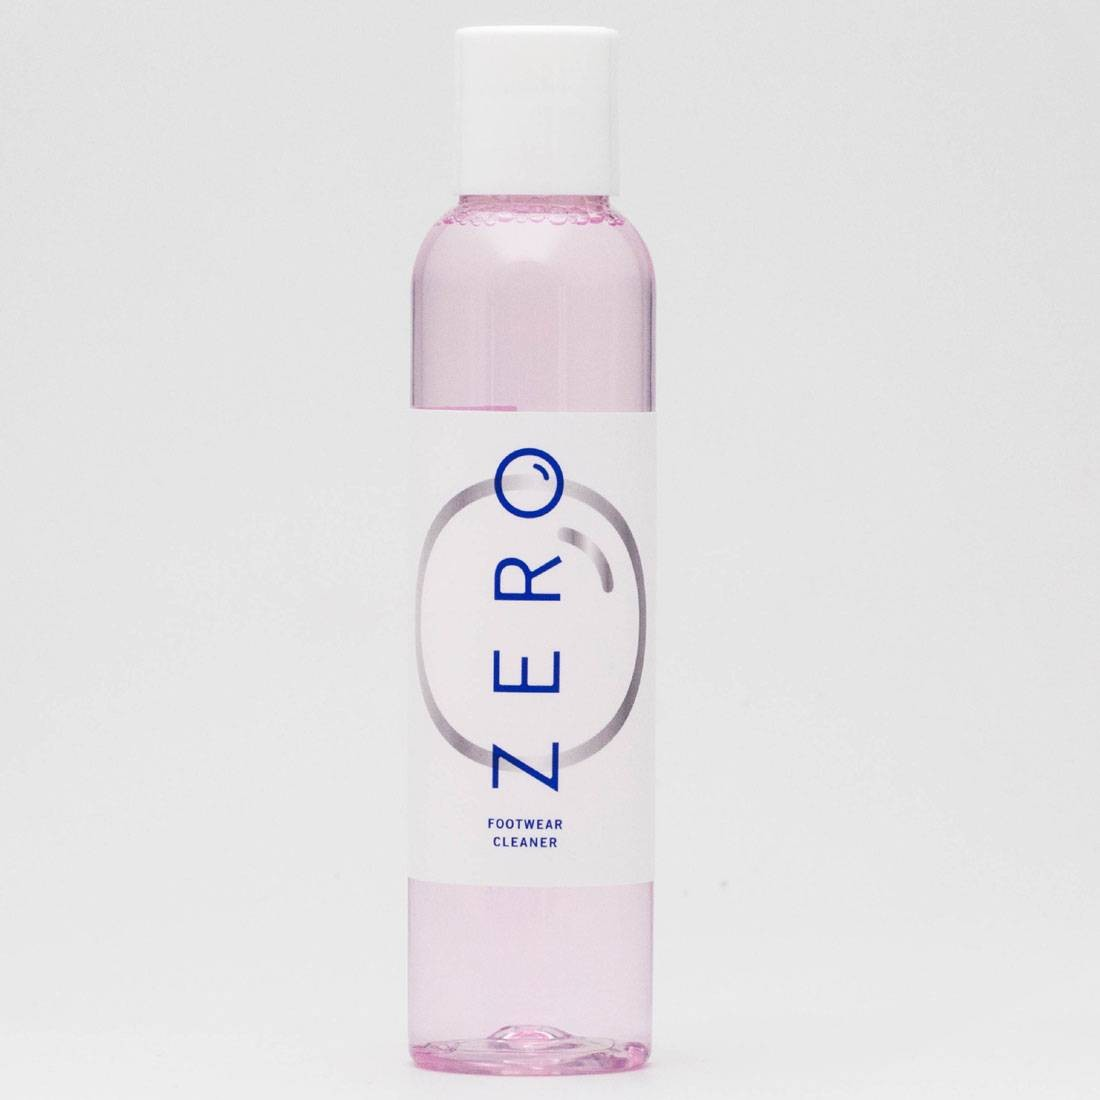 Zero Footwear Cleaner 5 oz Bottle (pink)